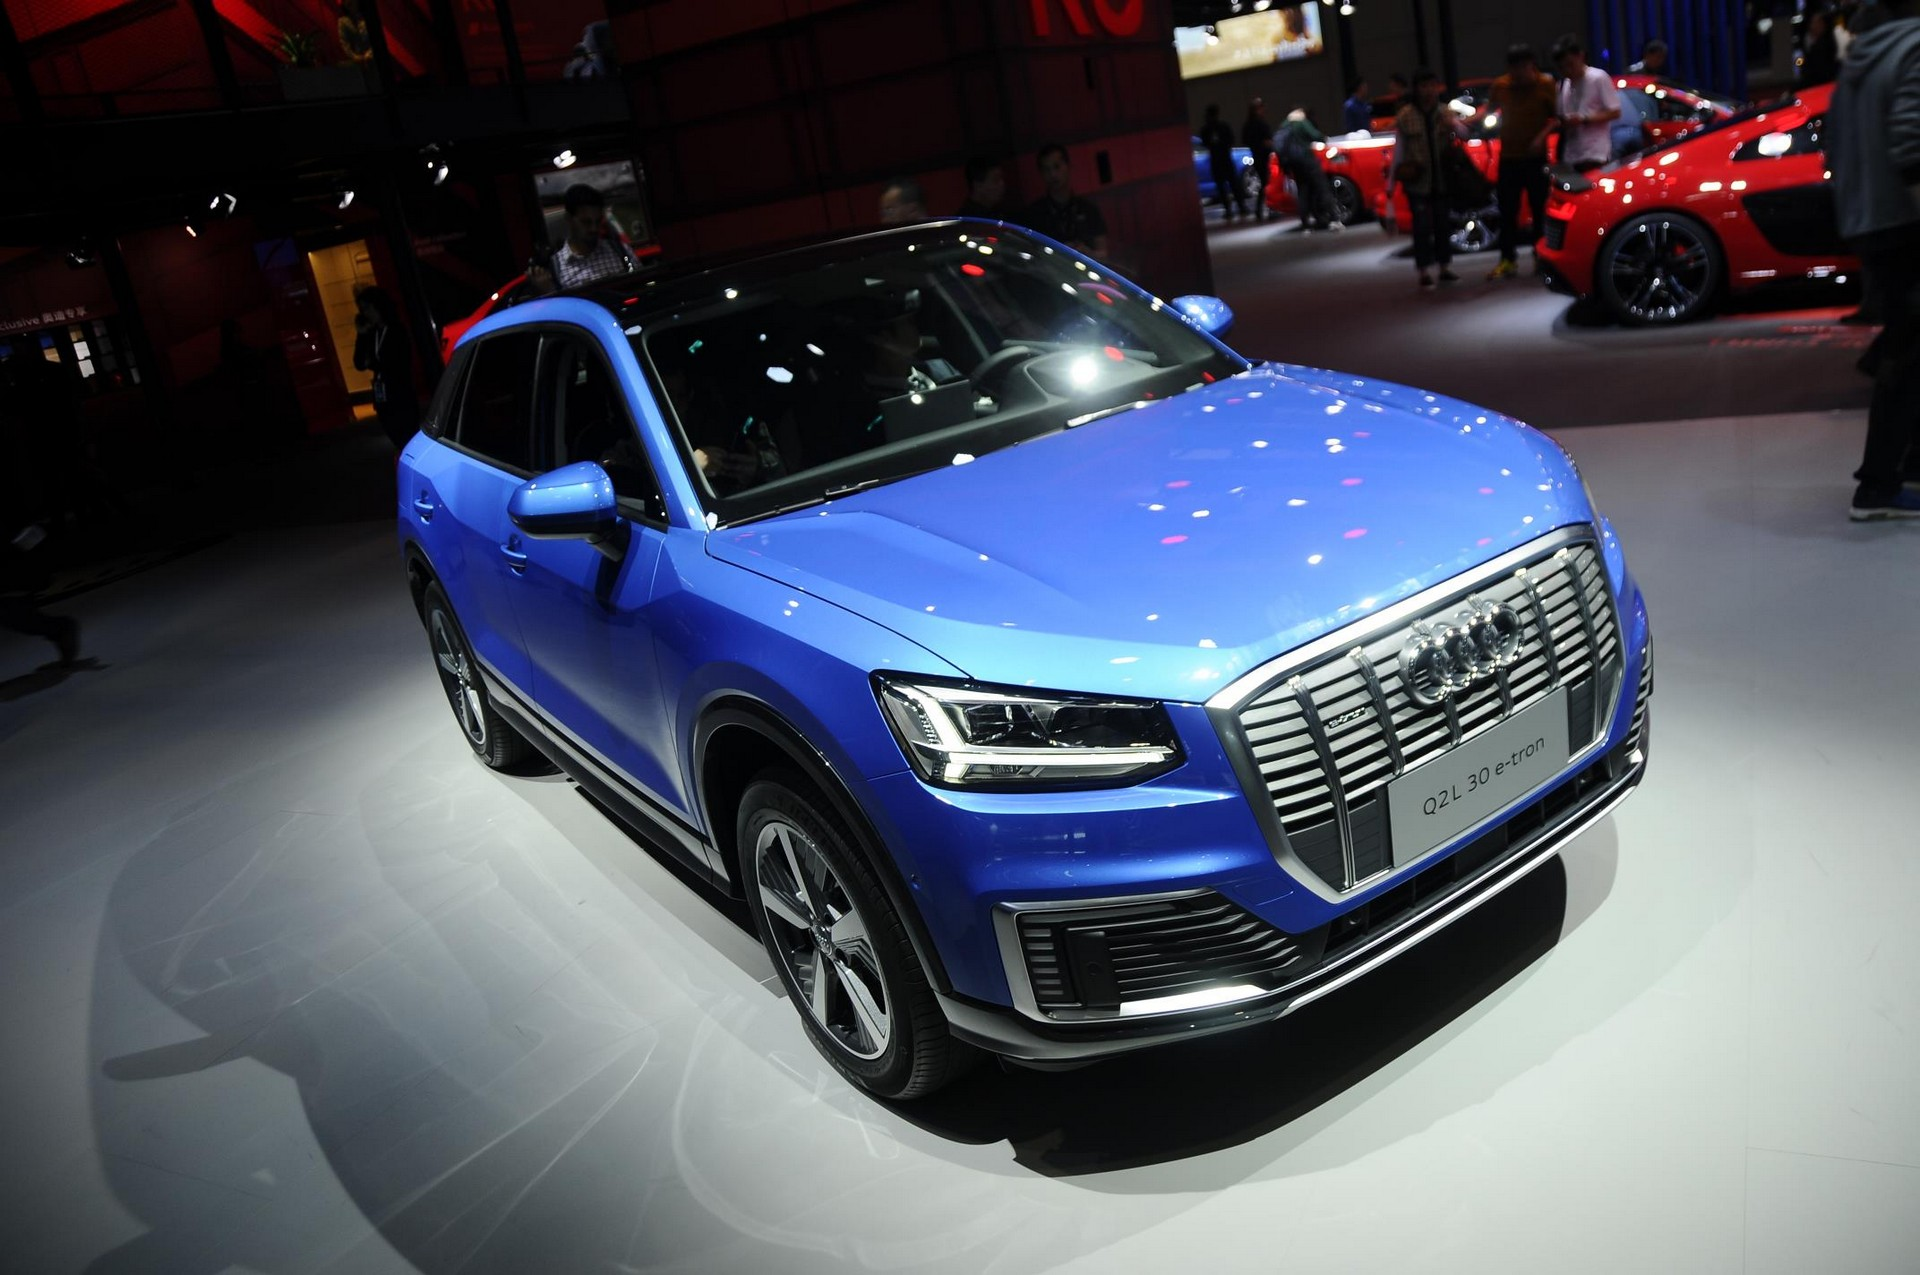 During the ongoing annual automobile show in Shanghai, China, Audi has presented its new all-electric SUV called the Q2L e-tron